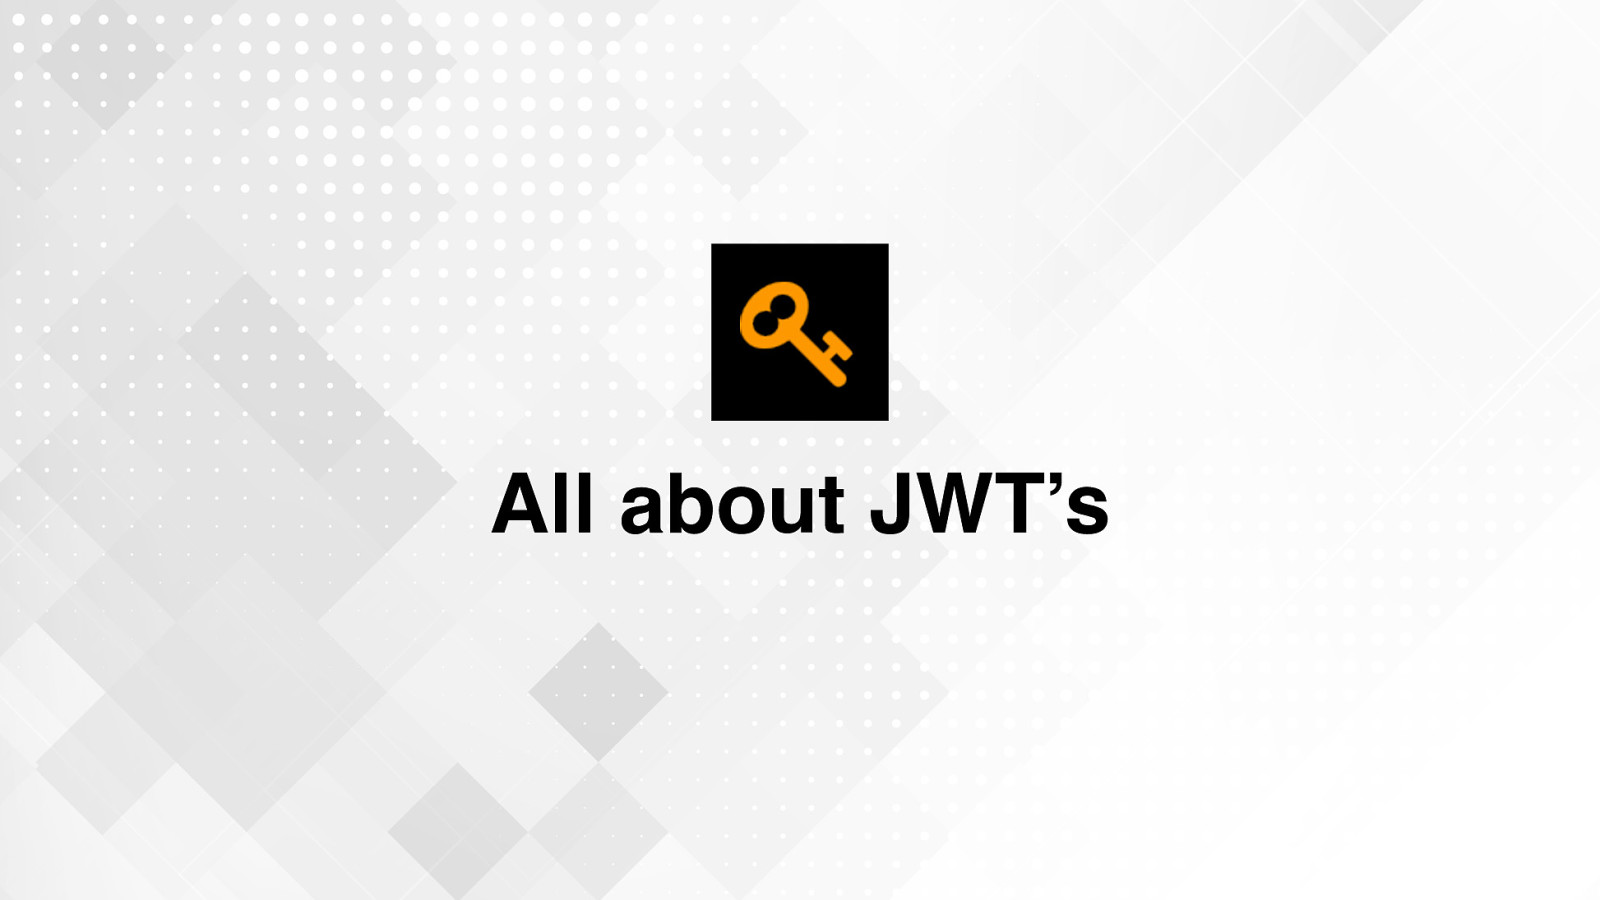 All About JWT's